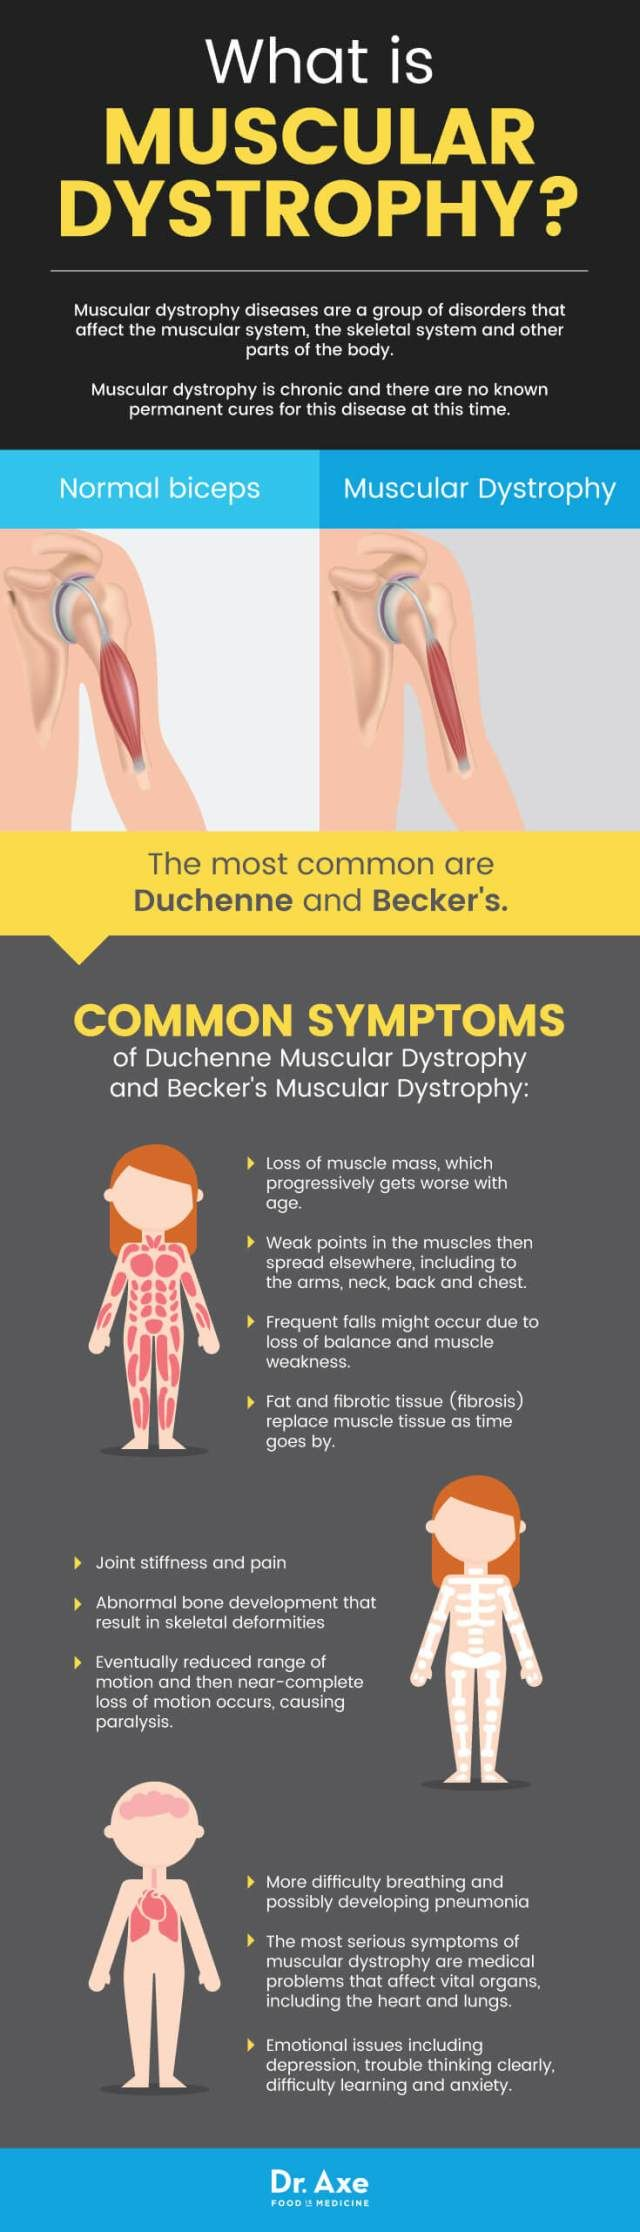 Muscular dystrophy diseases are a group of disorders that affect the muscular system, the skeletal system and other parts of the body. They span across all races and cultures. Muscular dystrophy is chronic and there are no known permanent cures for this disease at this time. Currently, there are only helpful medical treatments that can …